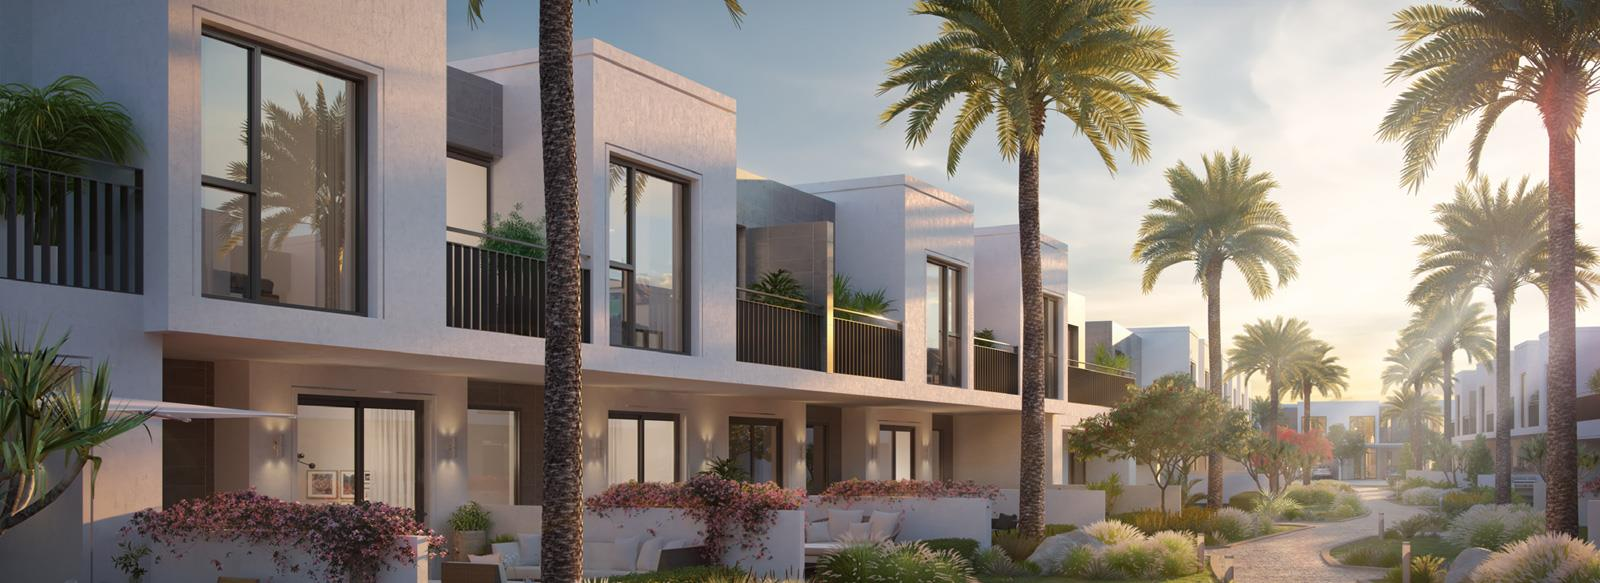 Easy 5/80/15 Post Handover Payment Plan,<div>5% Down Payment</div>